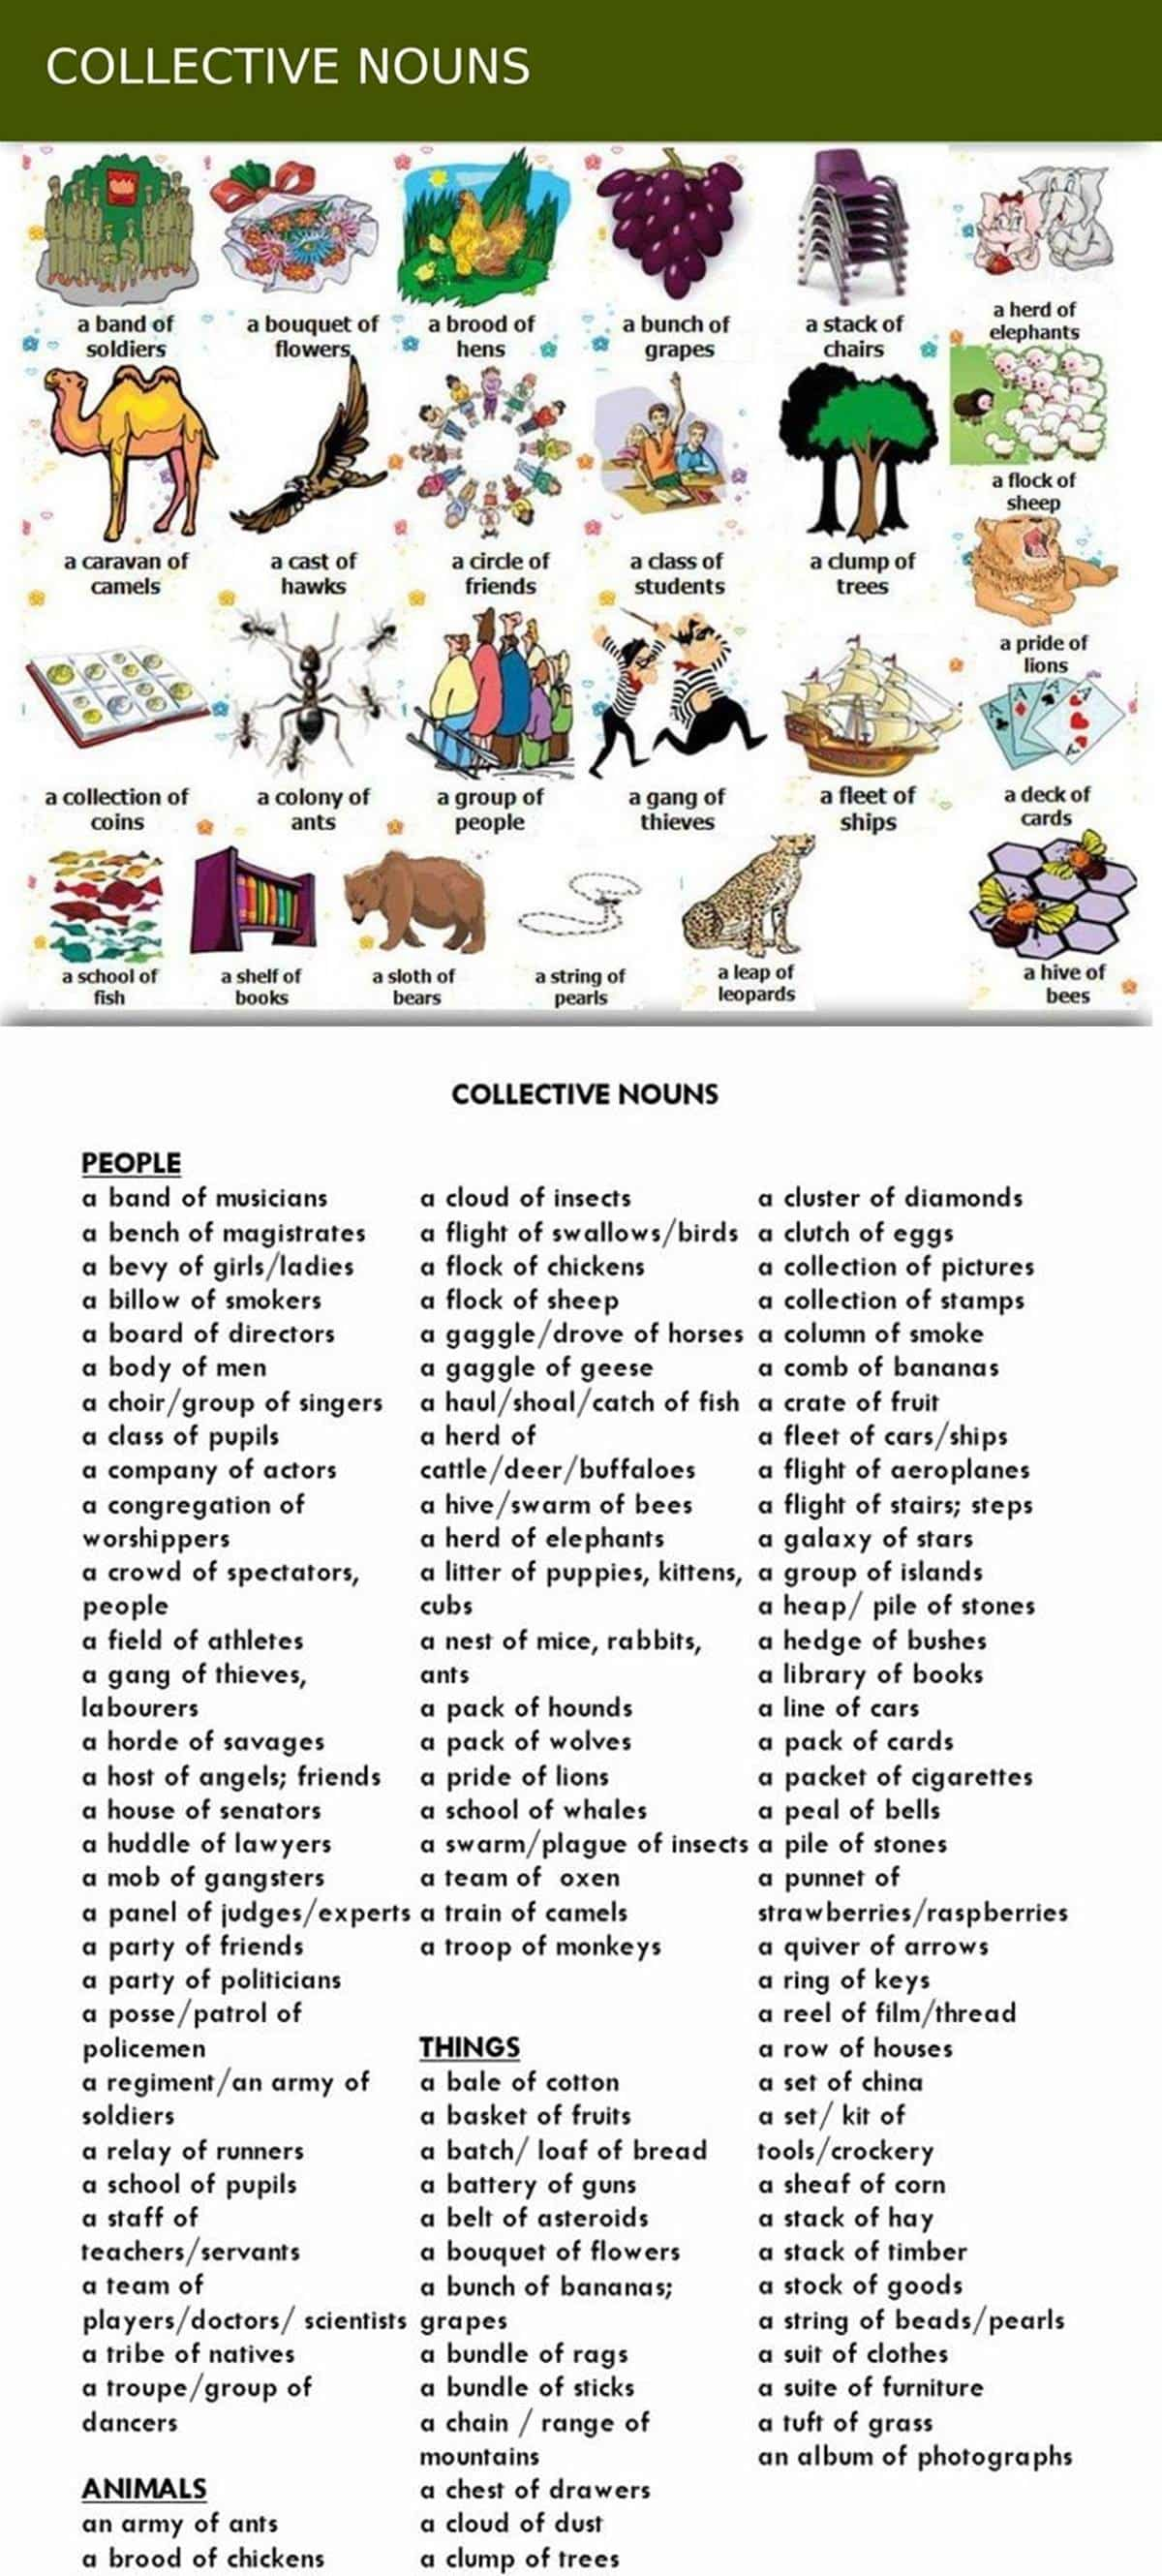 Group Words for People, Animals and Things